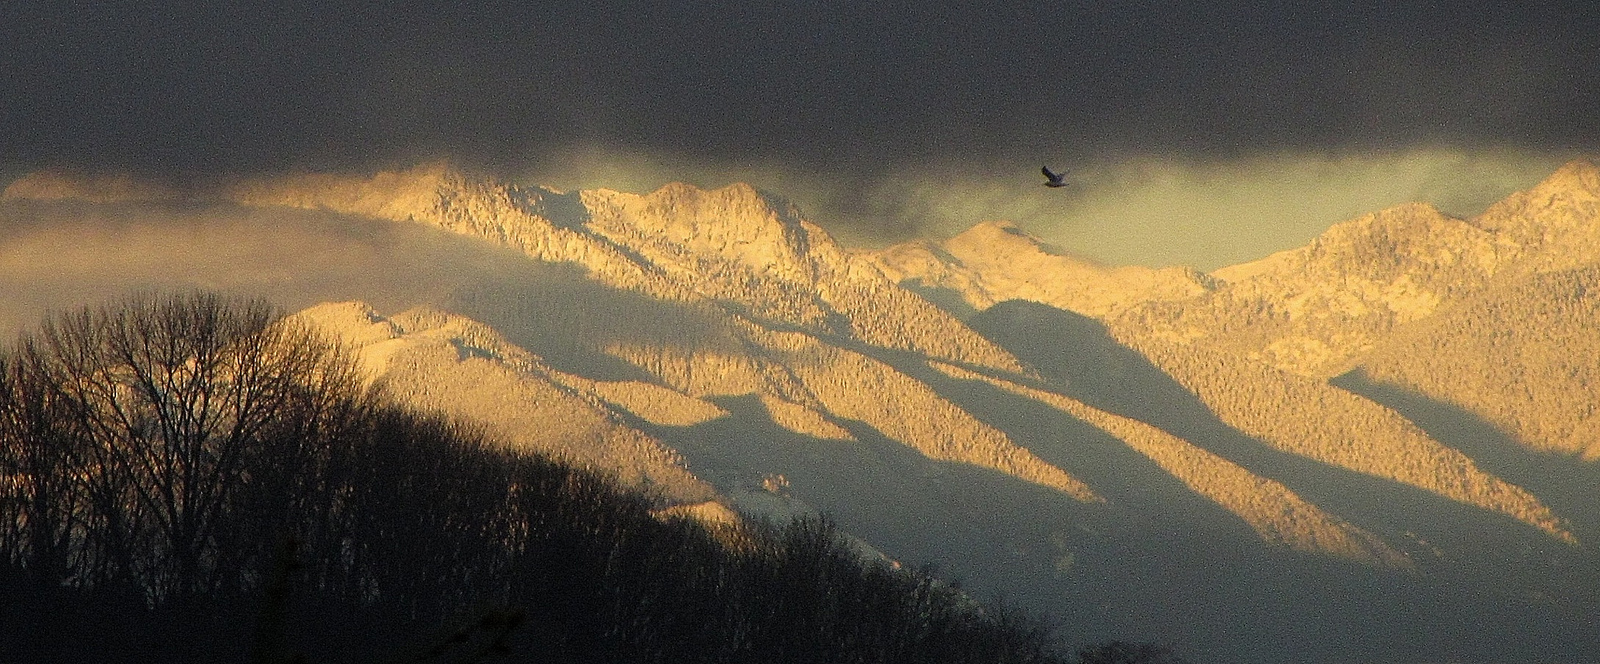 Dark clouds over golden-yellow snow-covered mountains